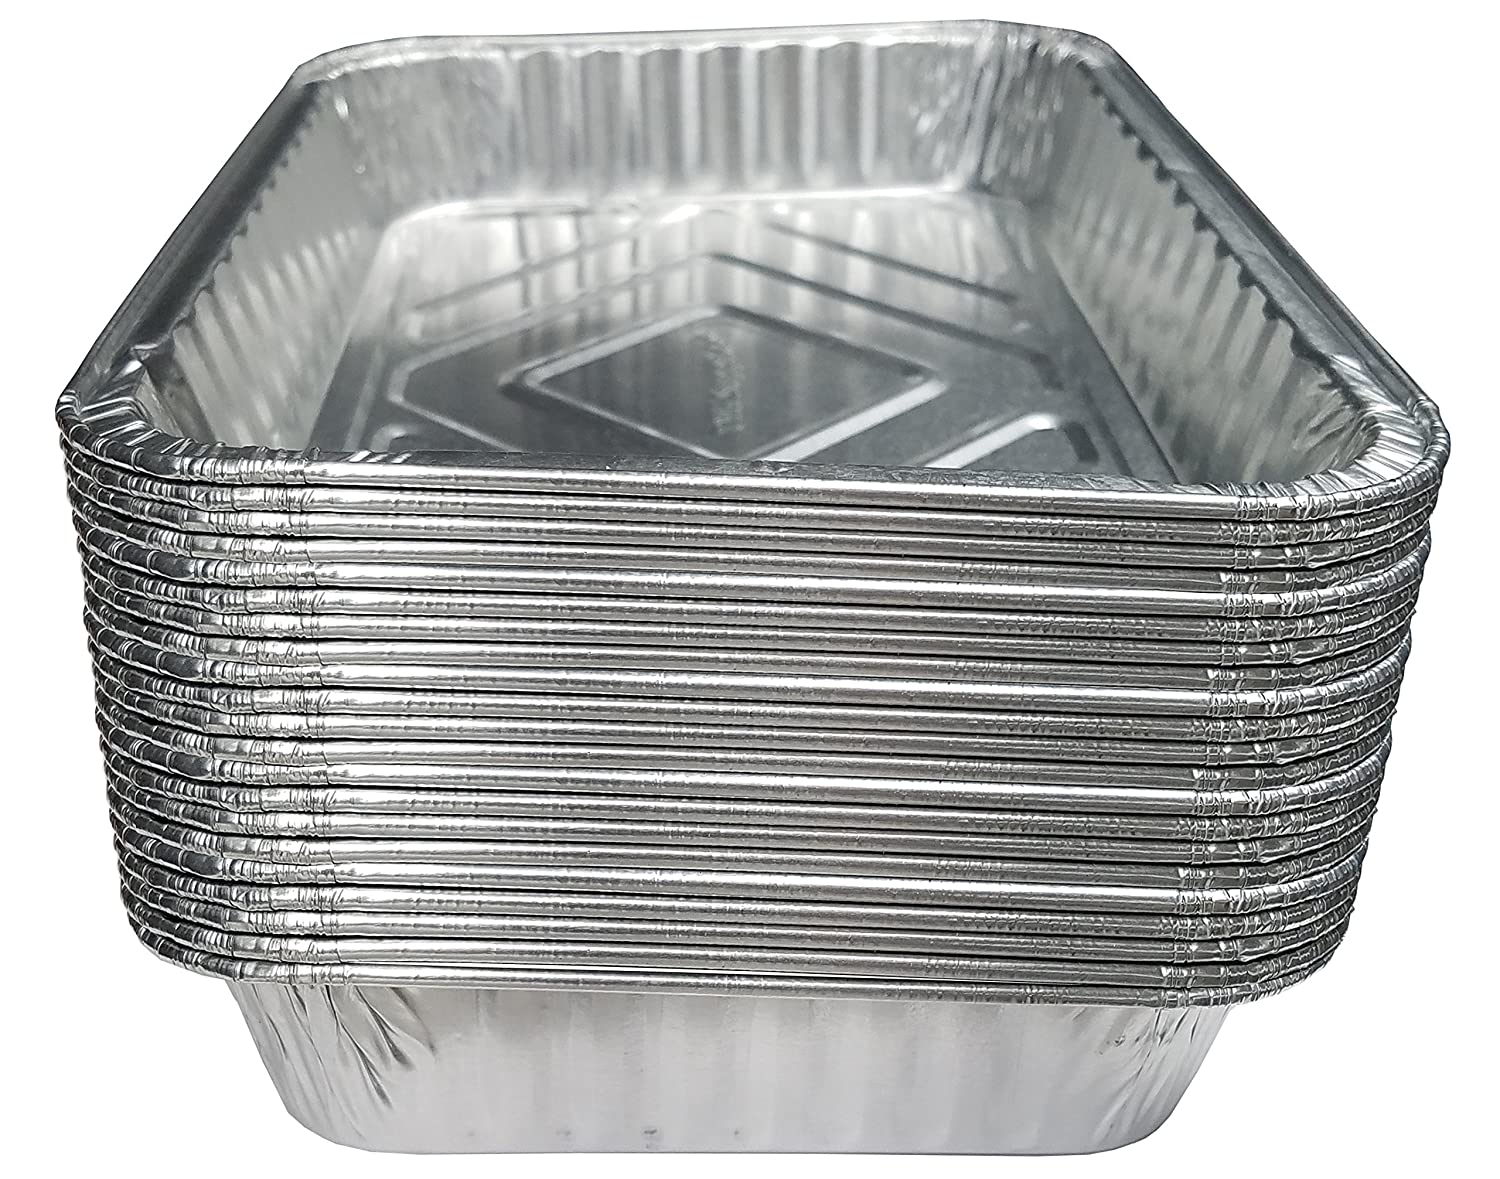 "TYH Supplies Aluminum Foil BBQ Grease Drip Pans for Weber Grills Q, Pulse, Spirit, Spirit II, Genesis II LX 200 and 300 Series Gas Grill 7.5"" x 5"", 20-Pack"